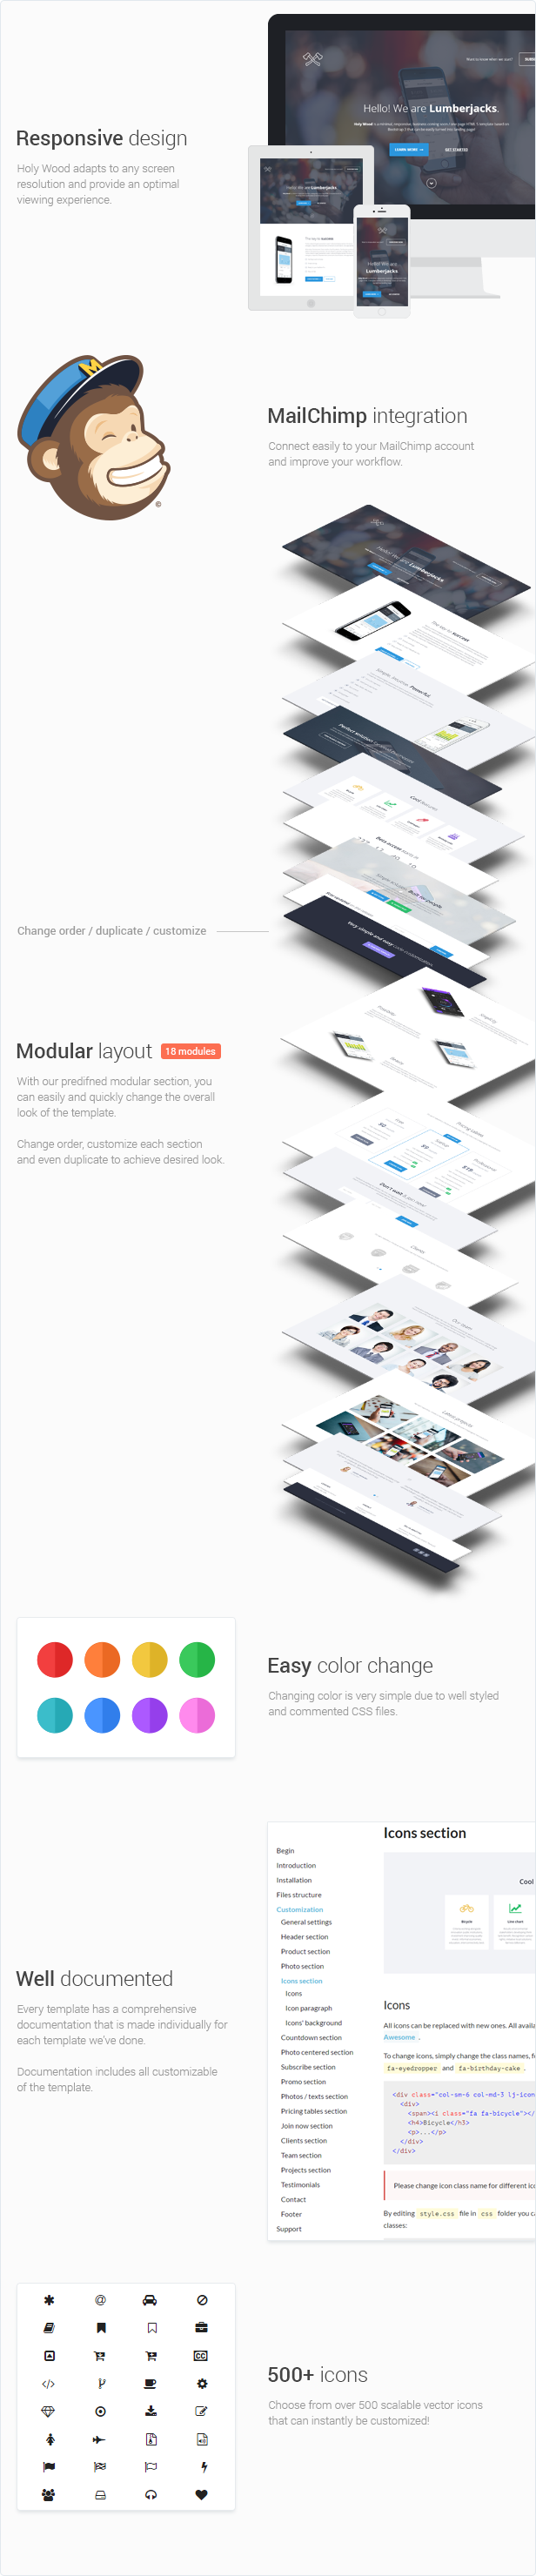 Beard Minimal Responsive Landing Page Template features and modules